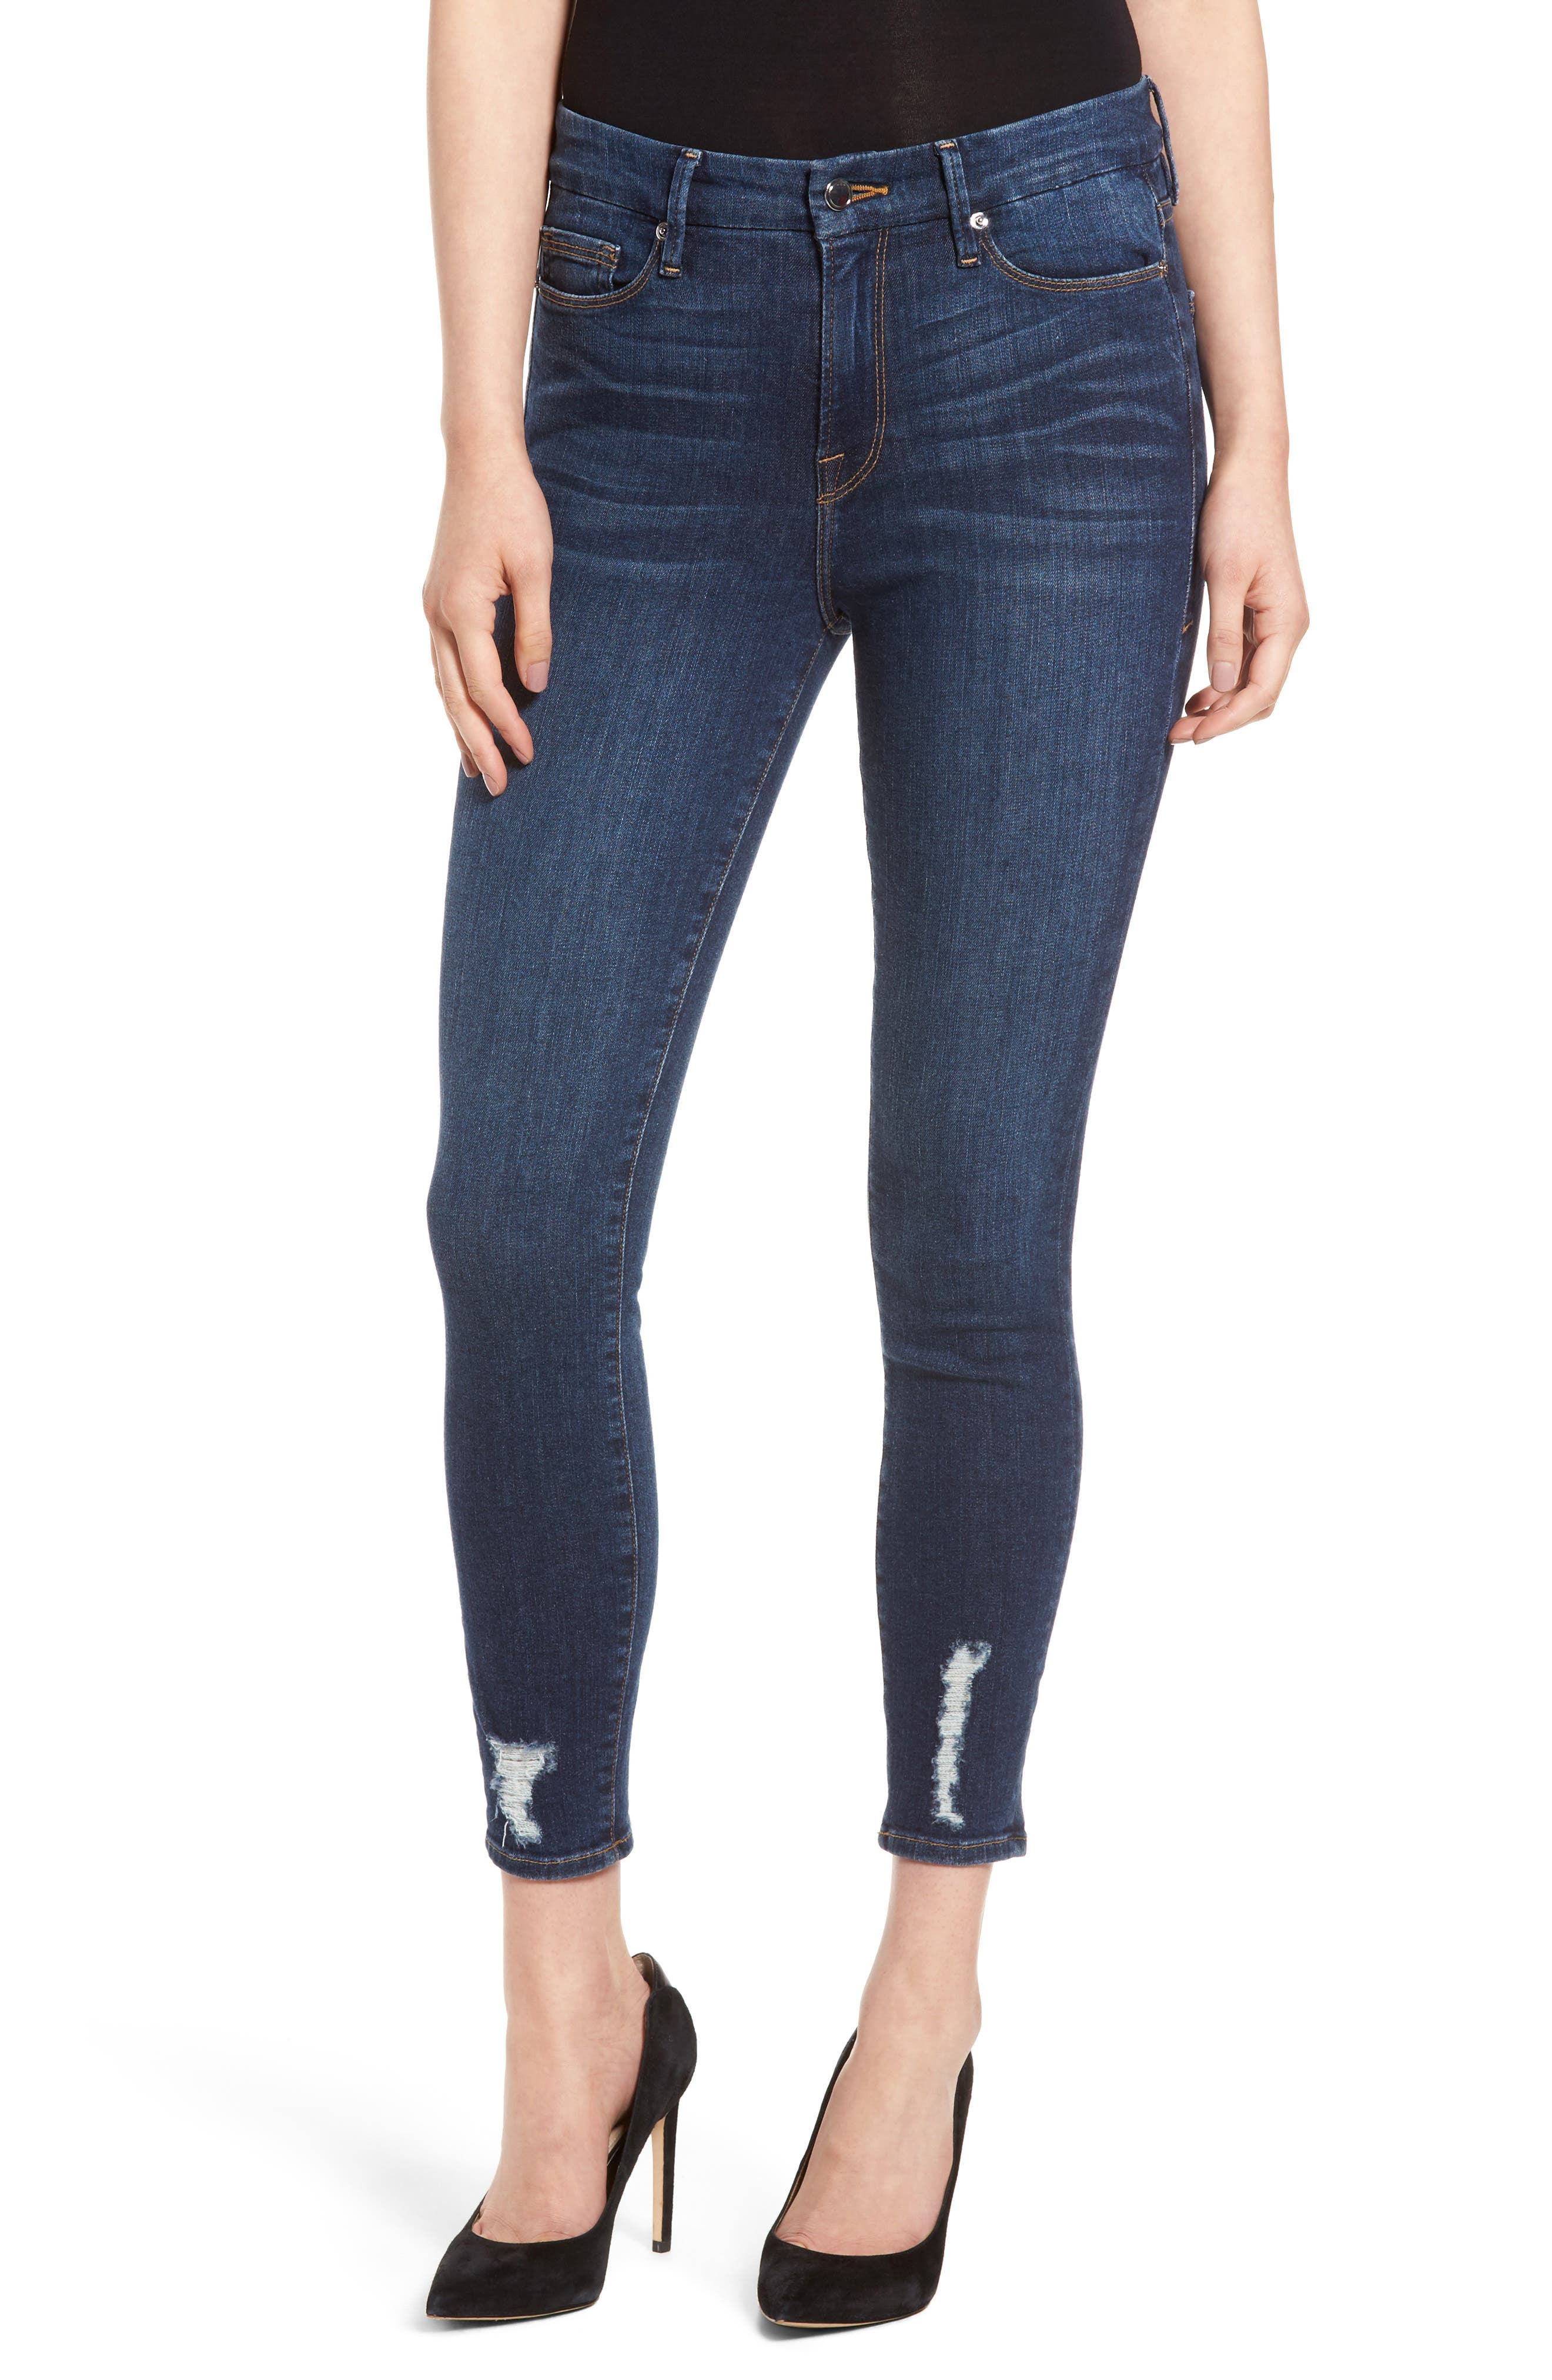 Good Legs High Rise Crop Skinny Jeans,                         Main,                         color, Blue047 Exclusive